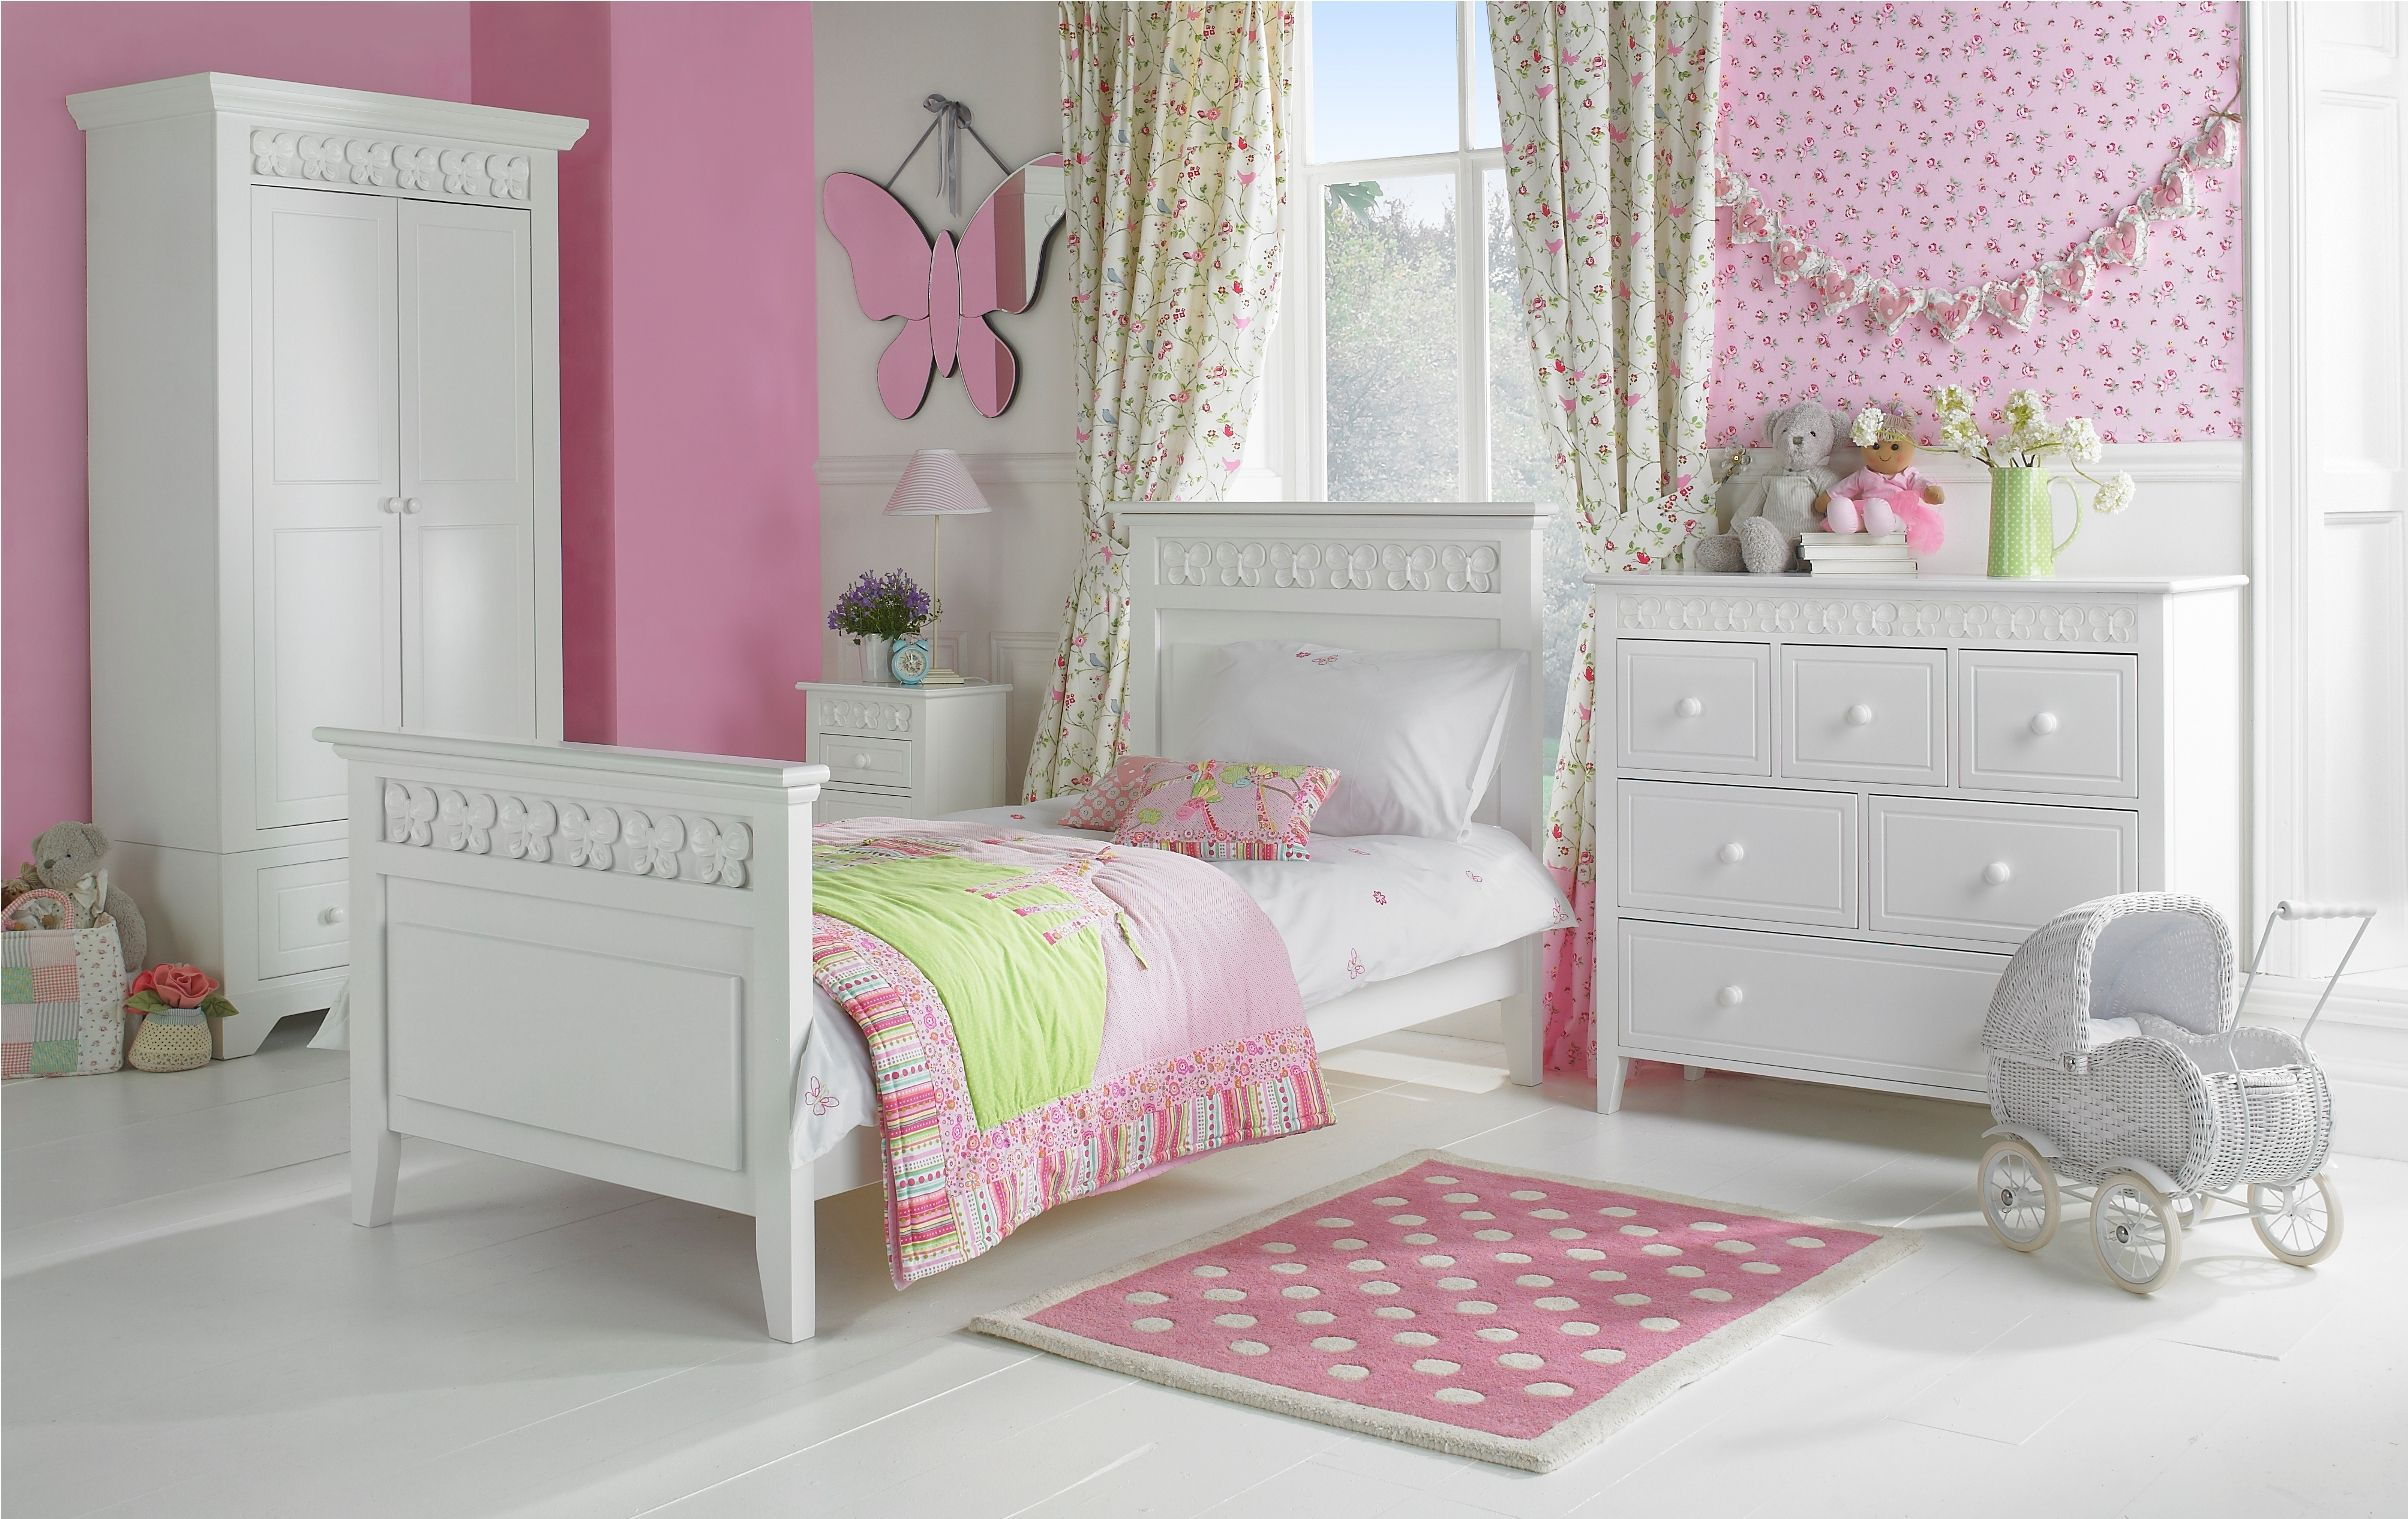 Furniture For Girl Bedroom Conglua White Girls Toddler Ideas Waplag Excerpt Affordable Stores Los Angeles